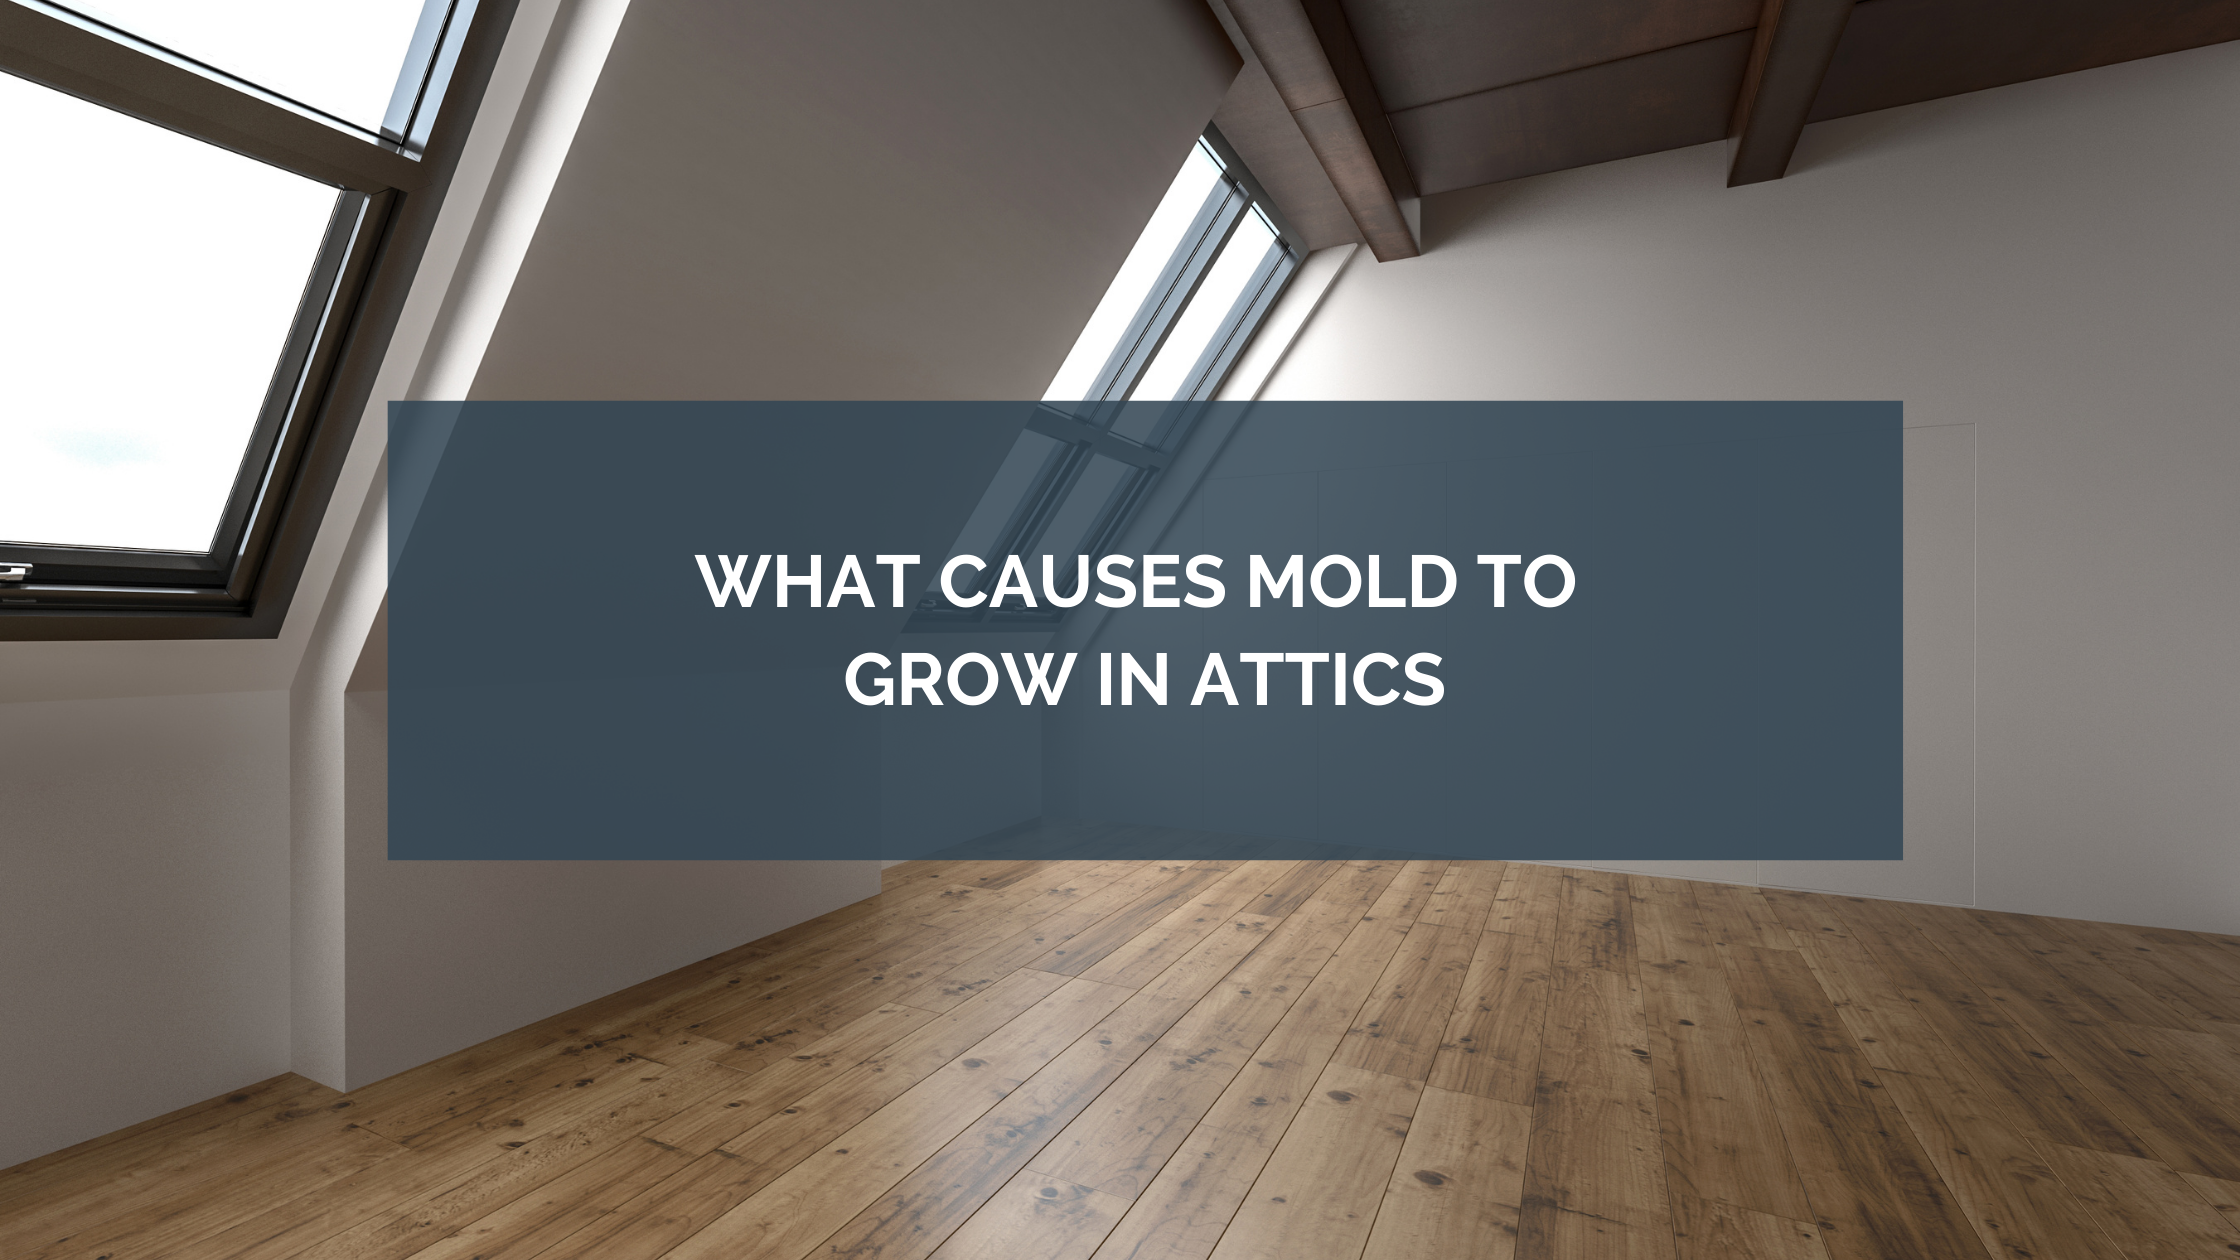 What Causes Mold to Grow in Attics